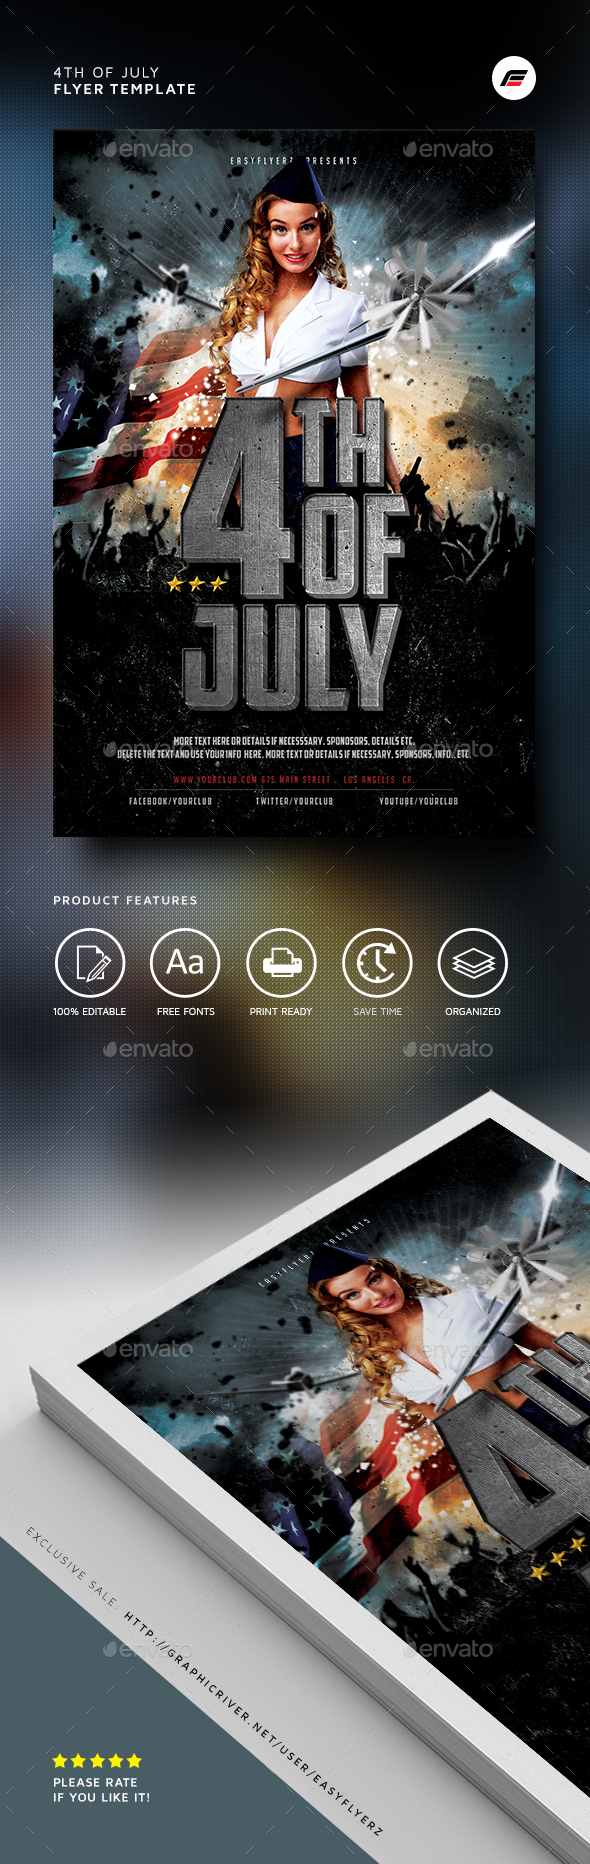 4th of July 2016 Flyer Template - Events Flyers